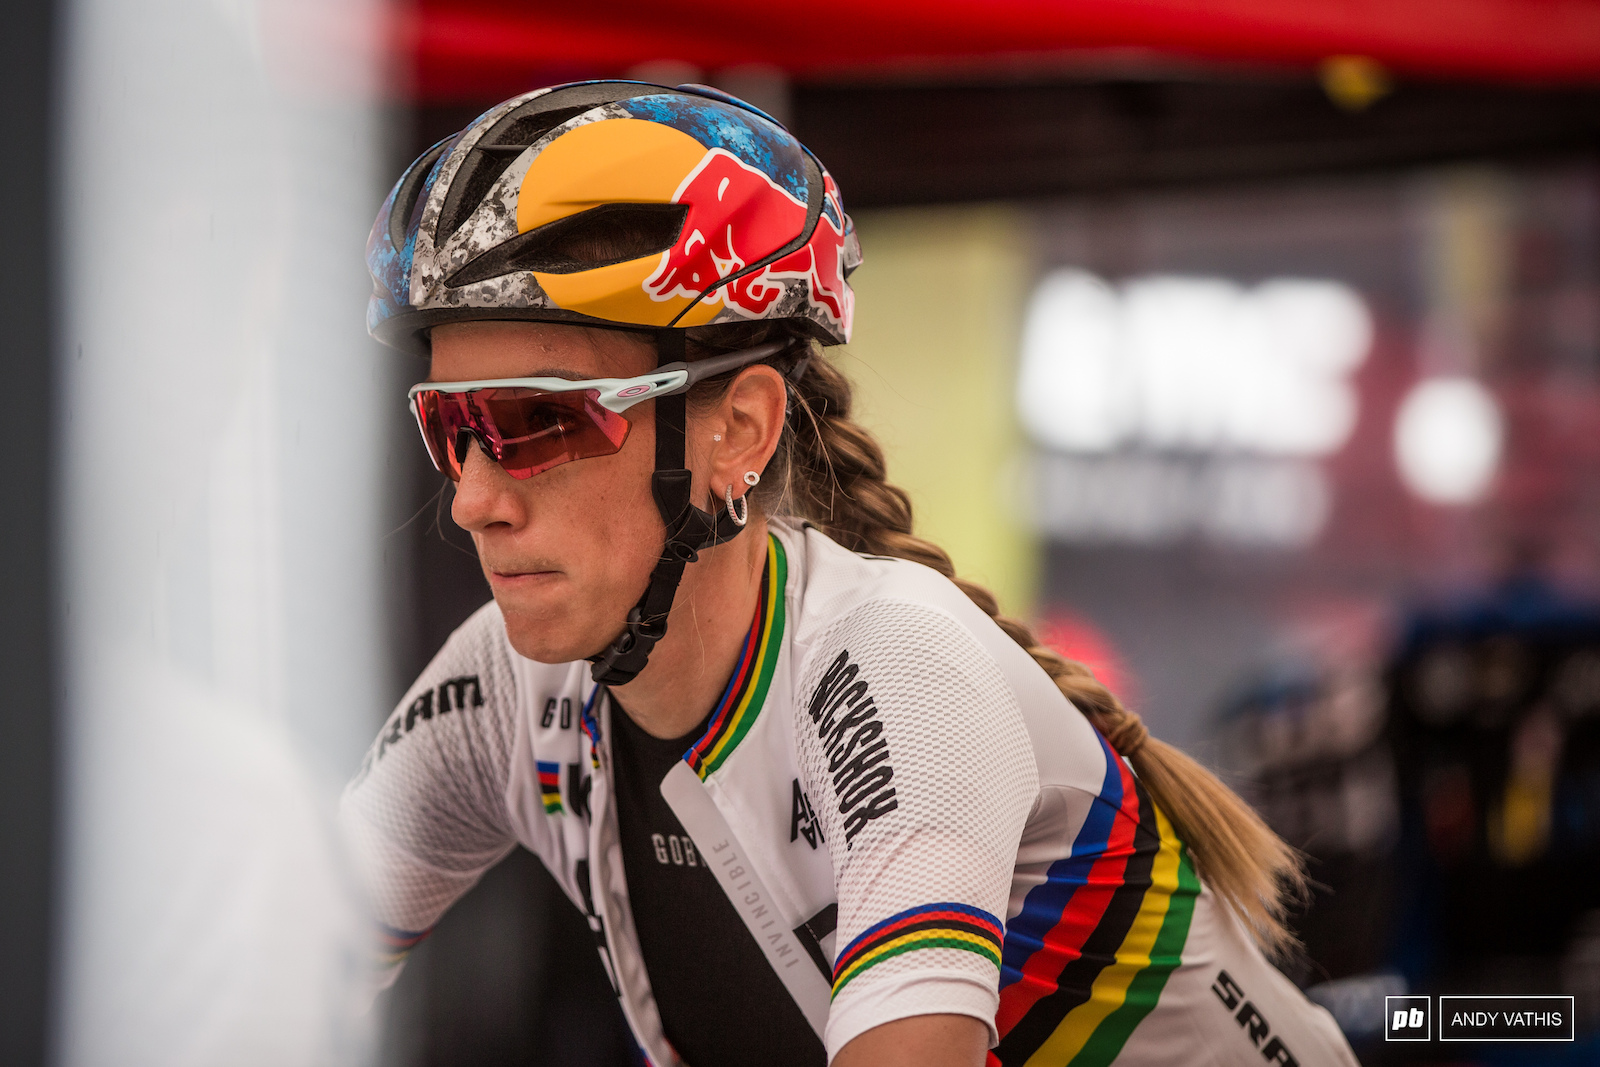 Pauline Ferrand Prevot is coming of a win on Friday night and as focused as ever.